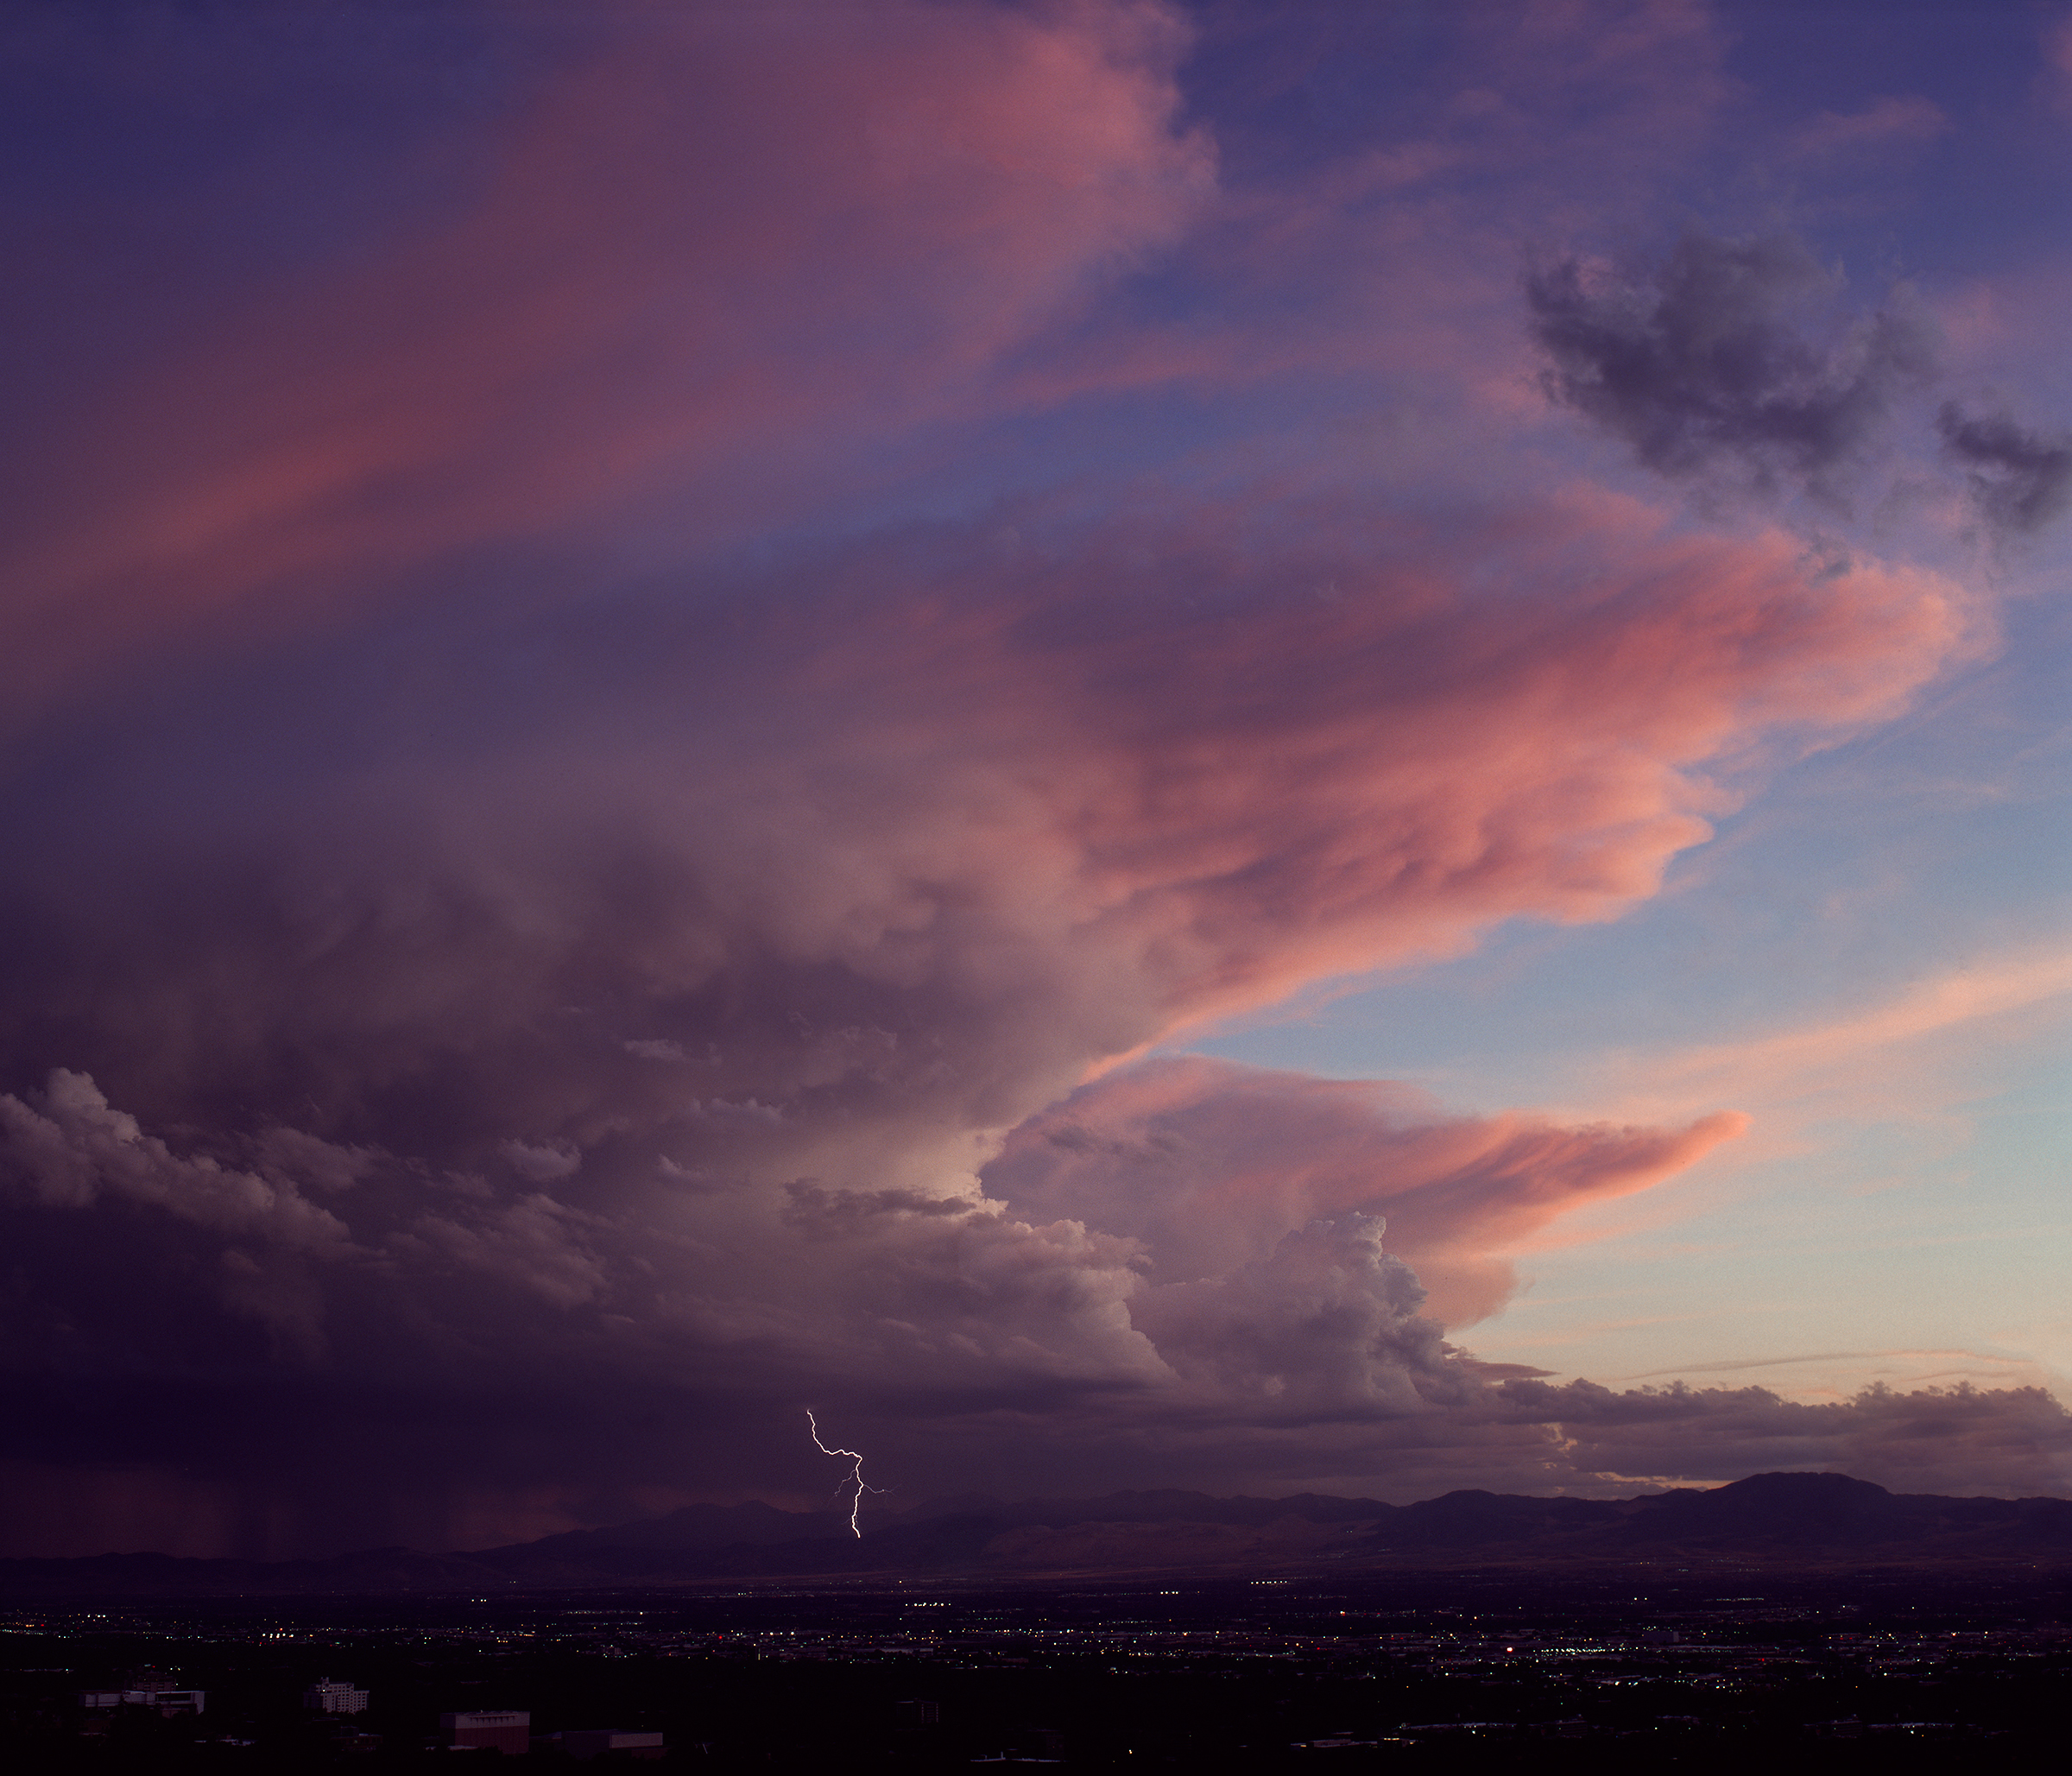 Evening Thunderstorm, Salt Lake City (2014)